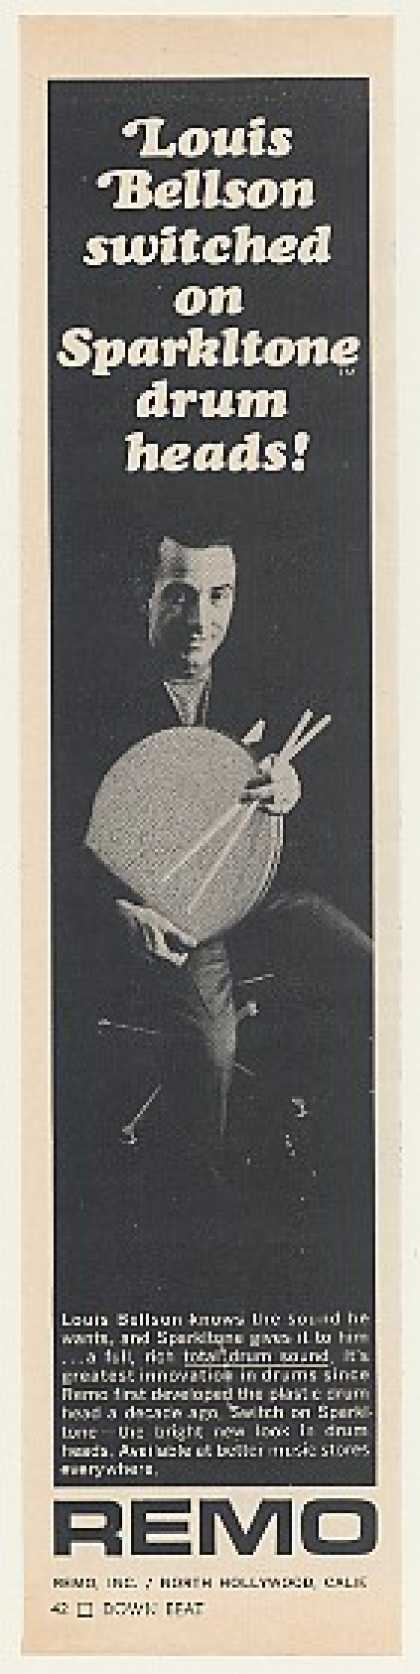 Louis Bellson Remo Sparkltone Drum Heads (1968)